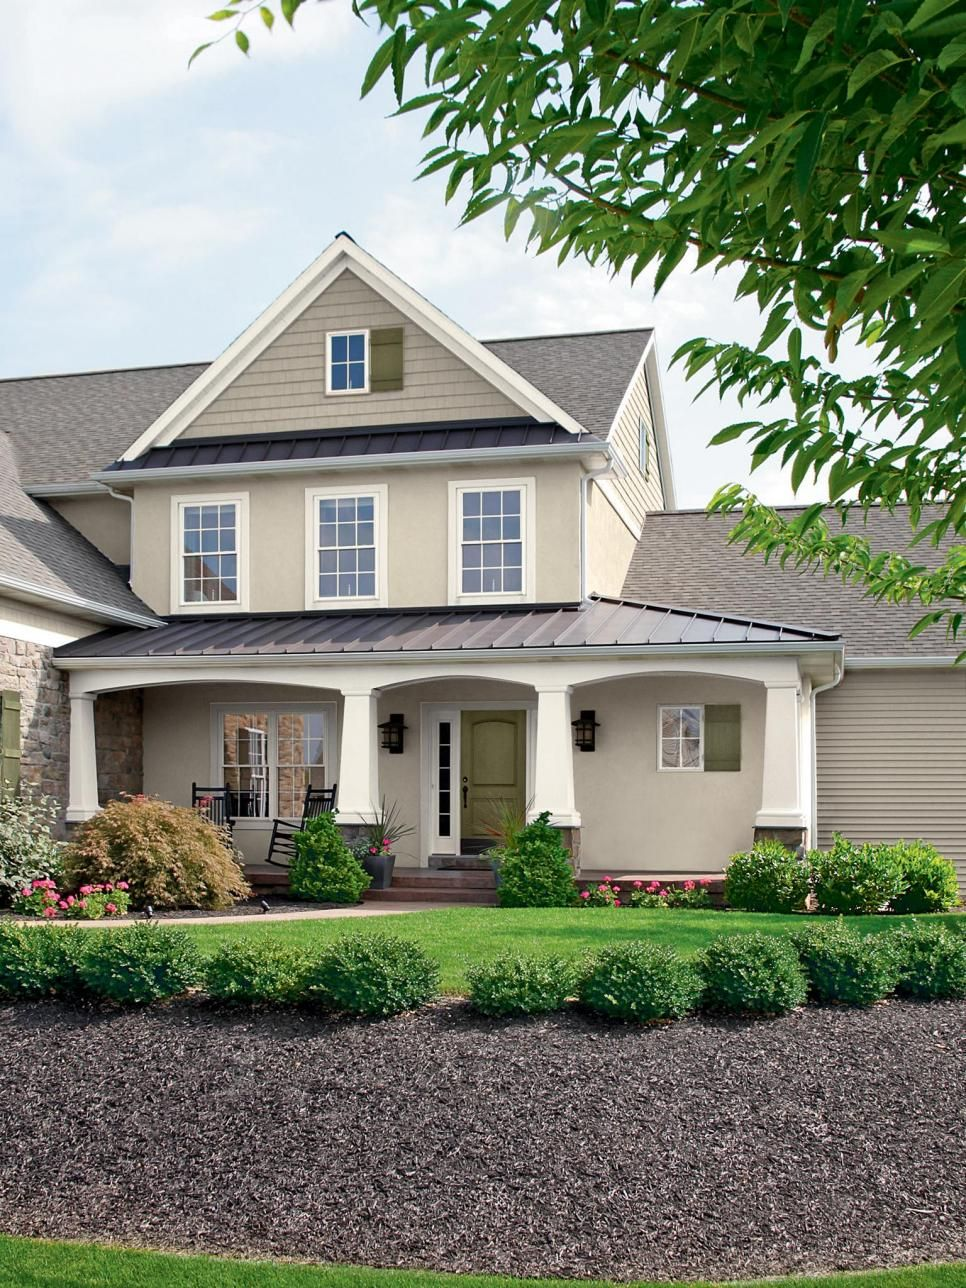 28 inviting home exterior color ideas paint color on exterior house paint colors schemes id=43296